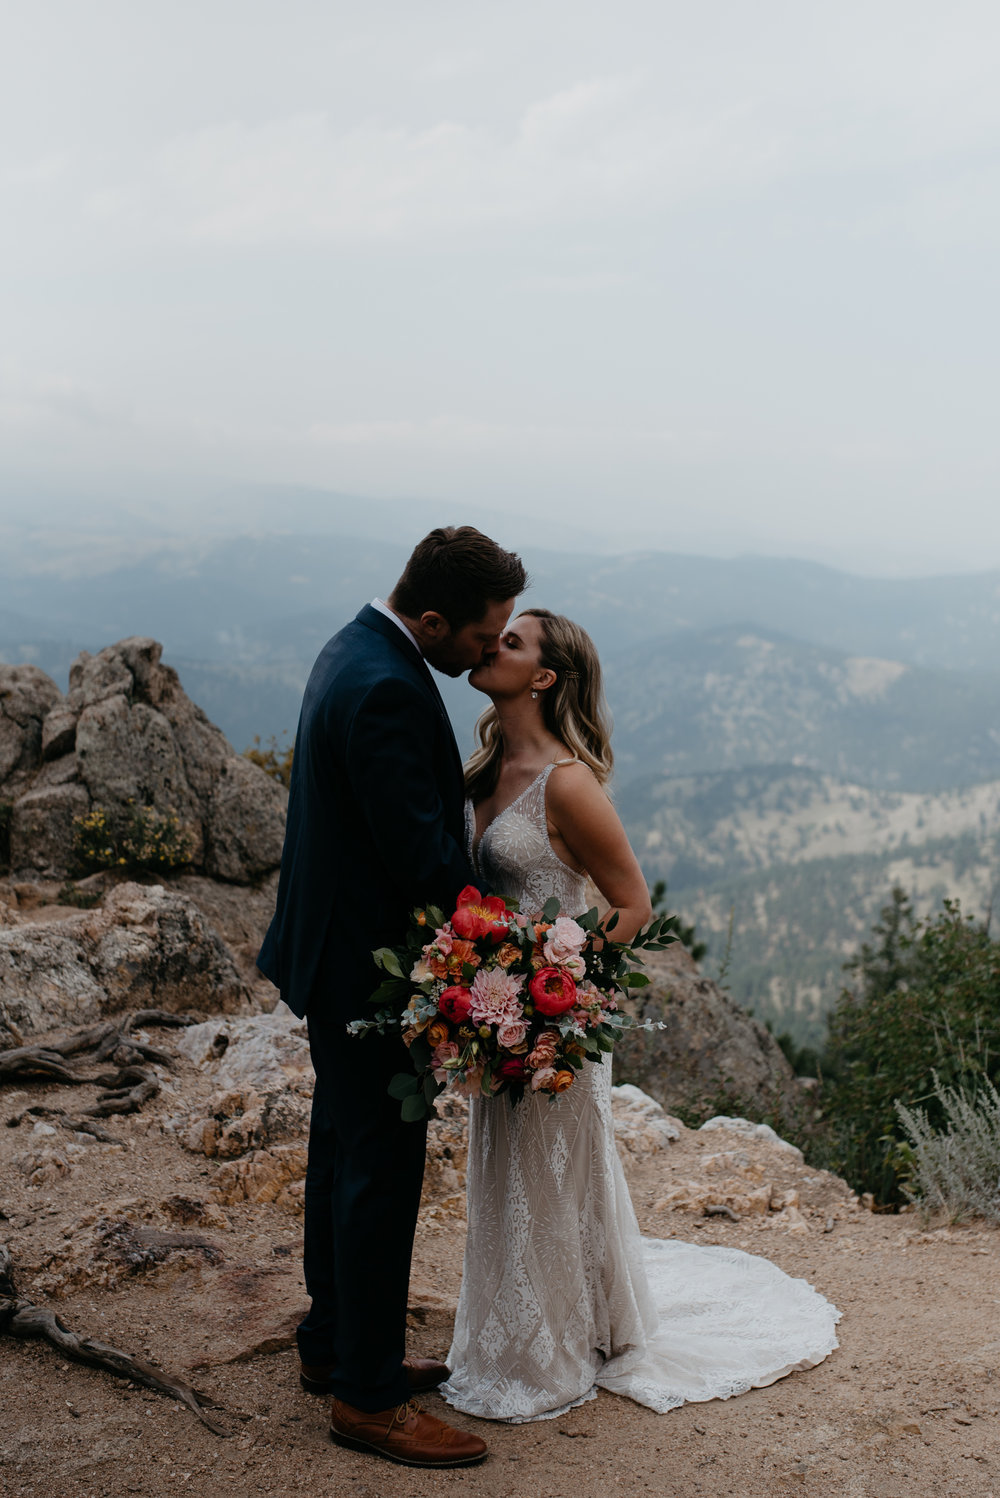 Lost Gulch mountain elopement photos in Boulder, Colorado. Colorado wedding and elopement photographer.